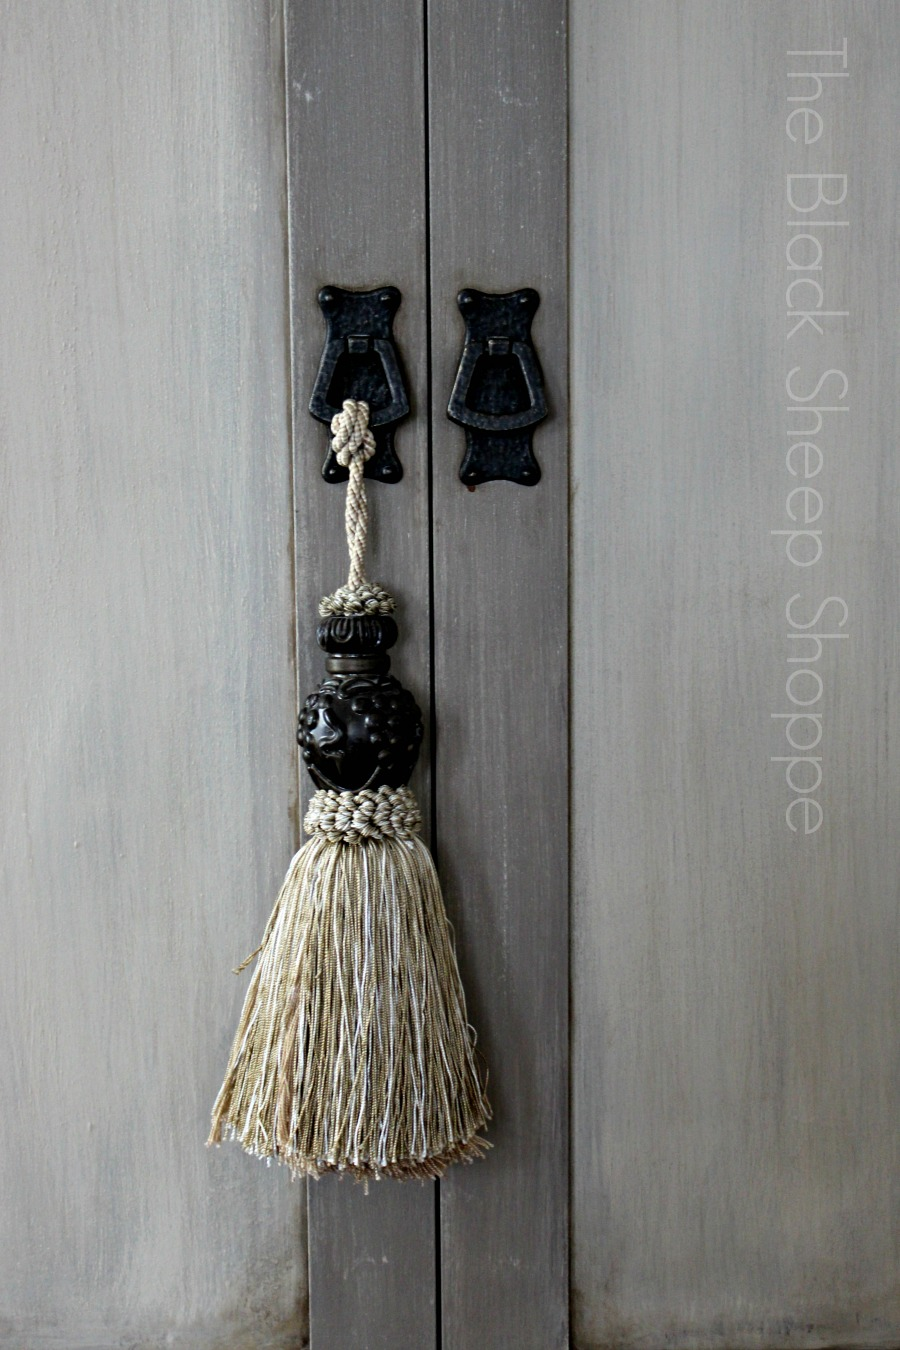 Armoire knobs and furniture tassel